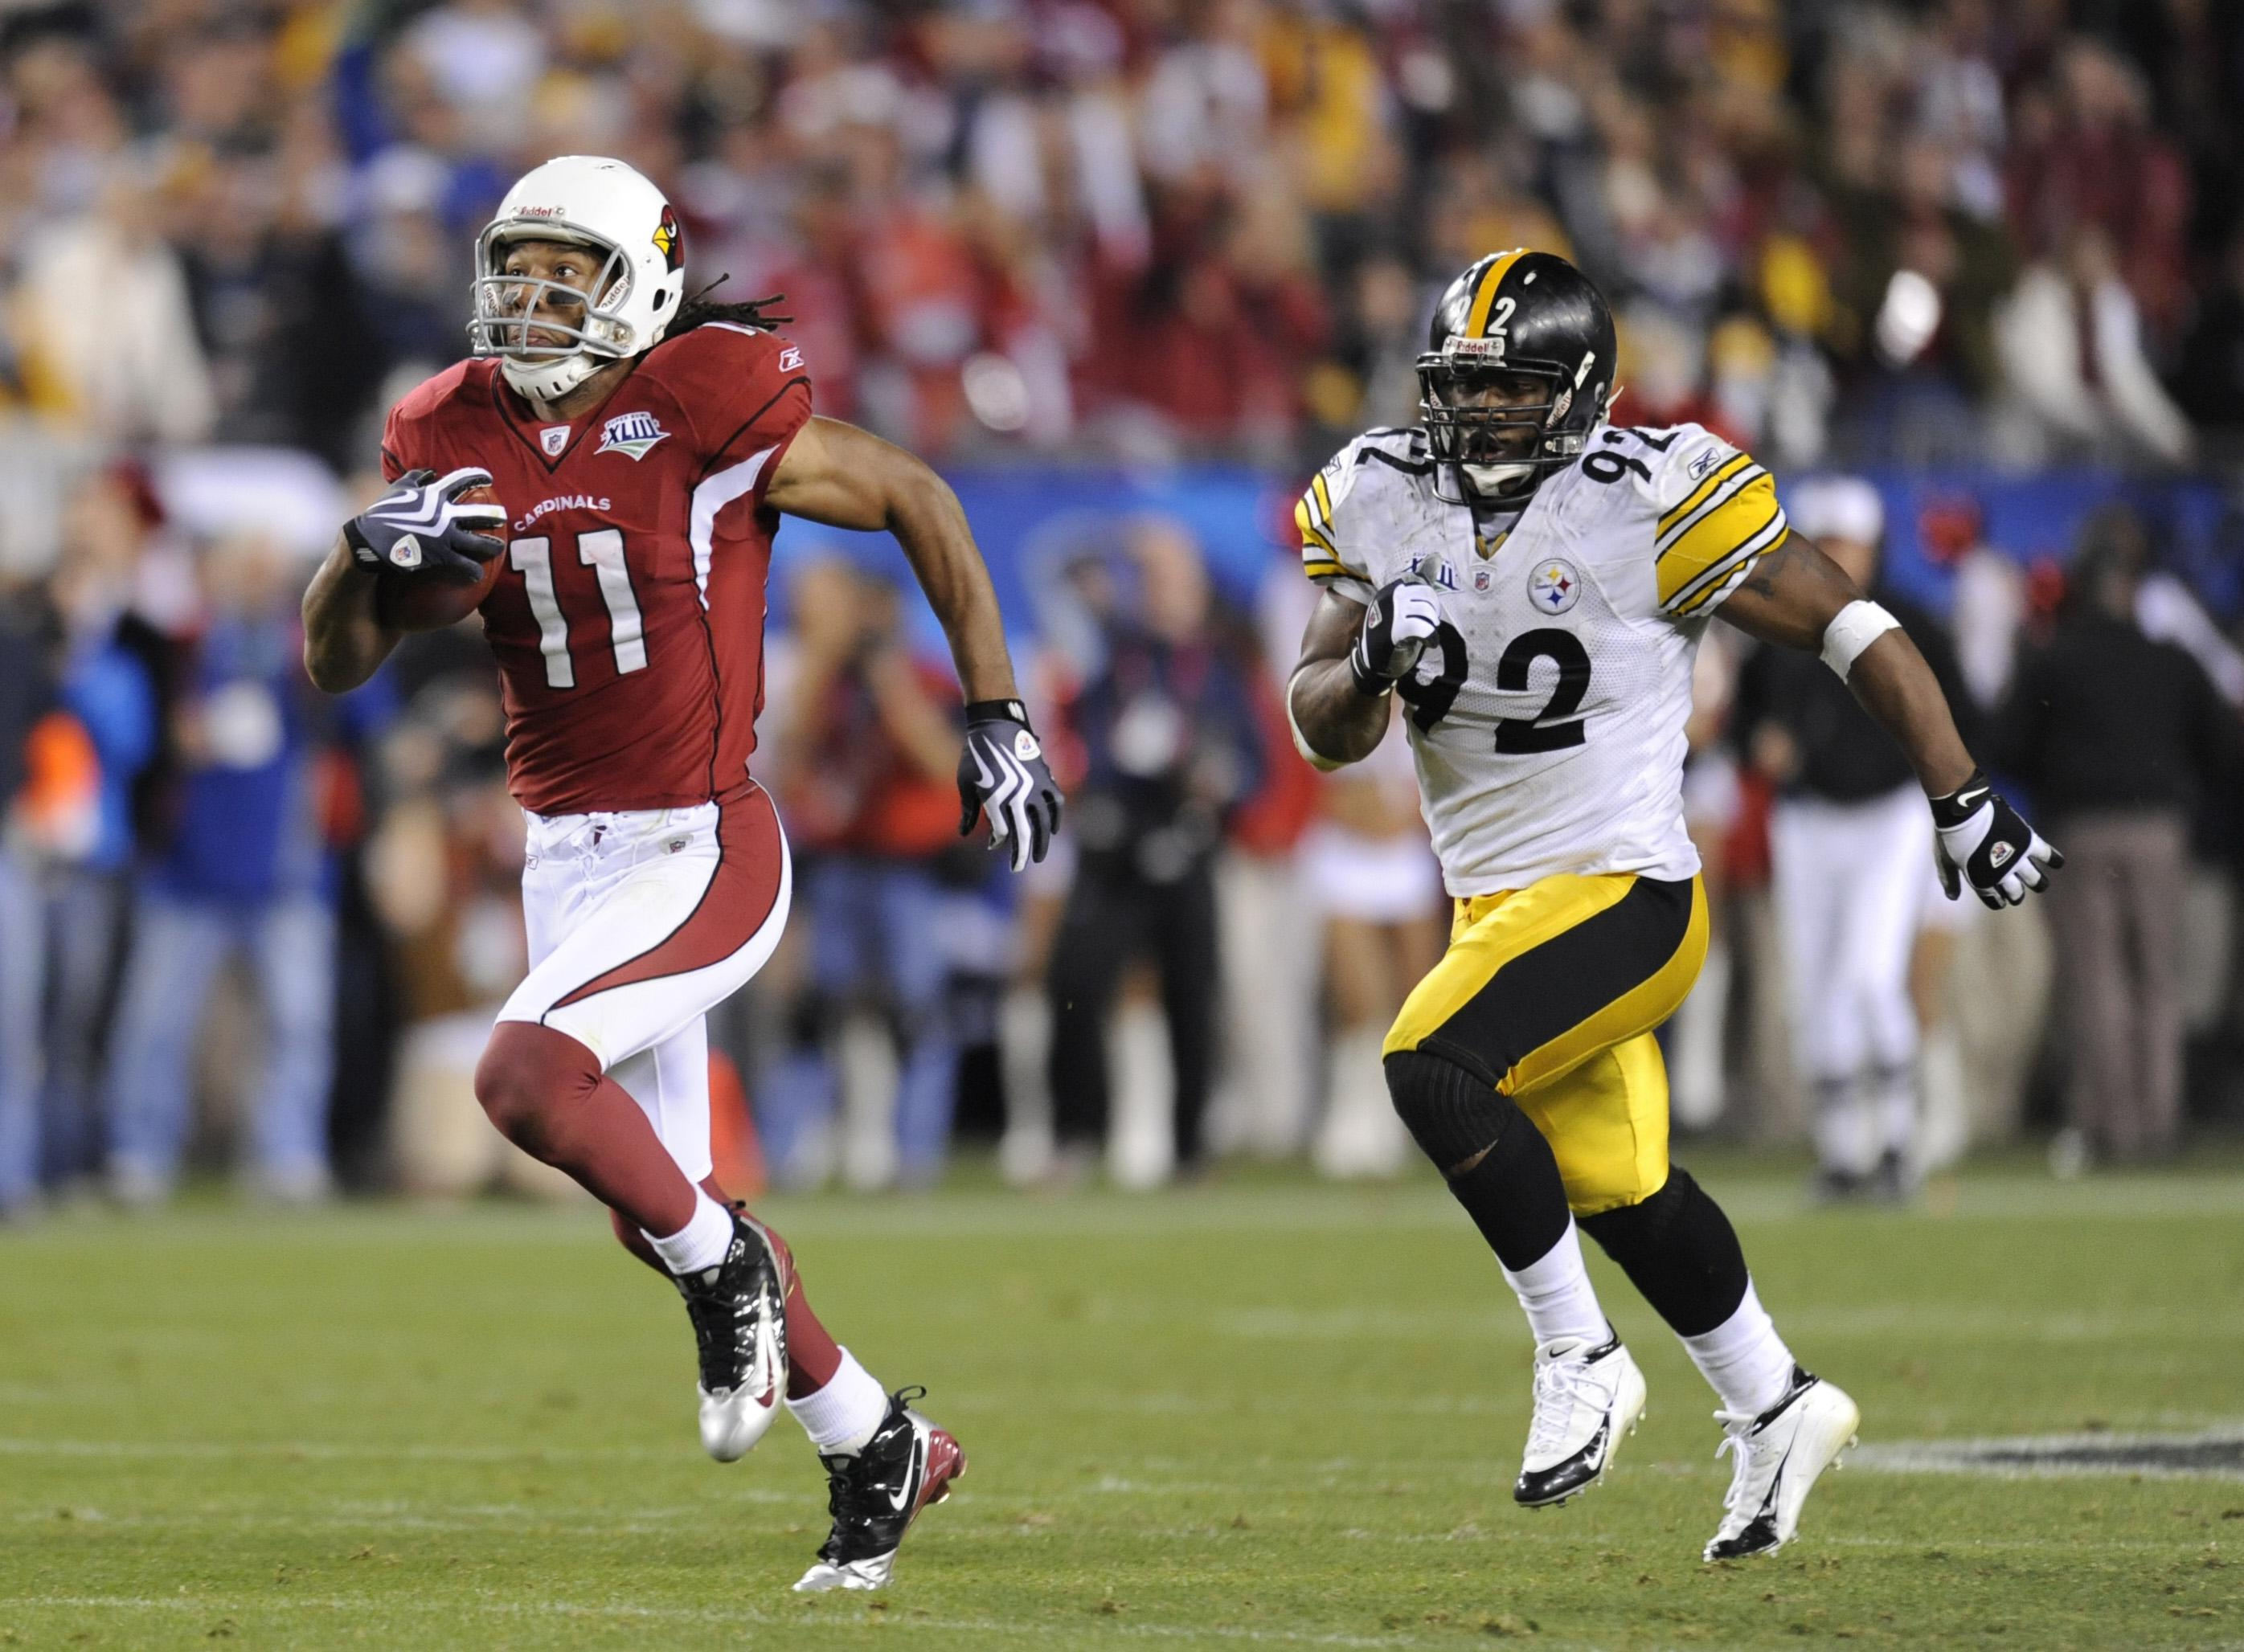 Larry Fitzgerald to return to Cardinals for 2018 season